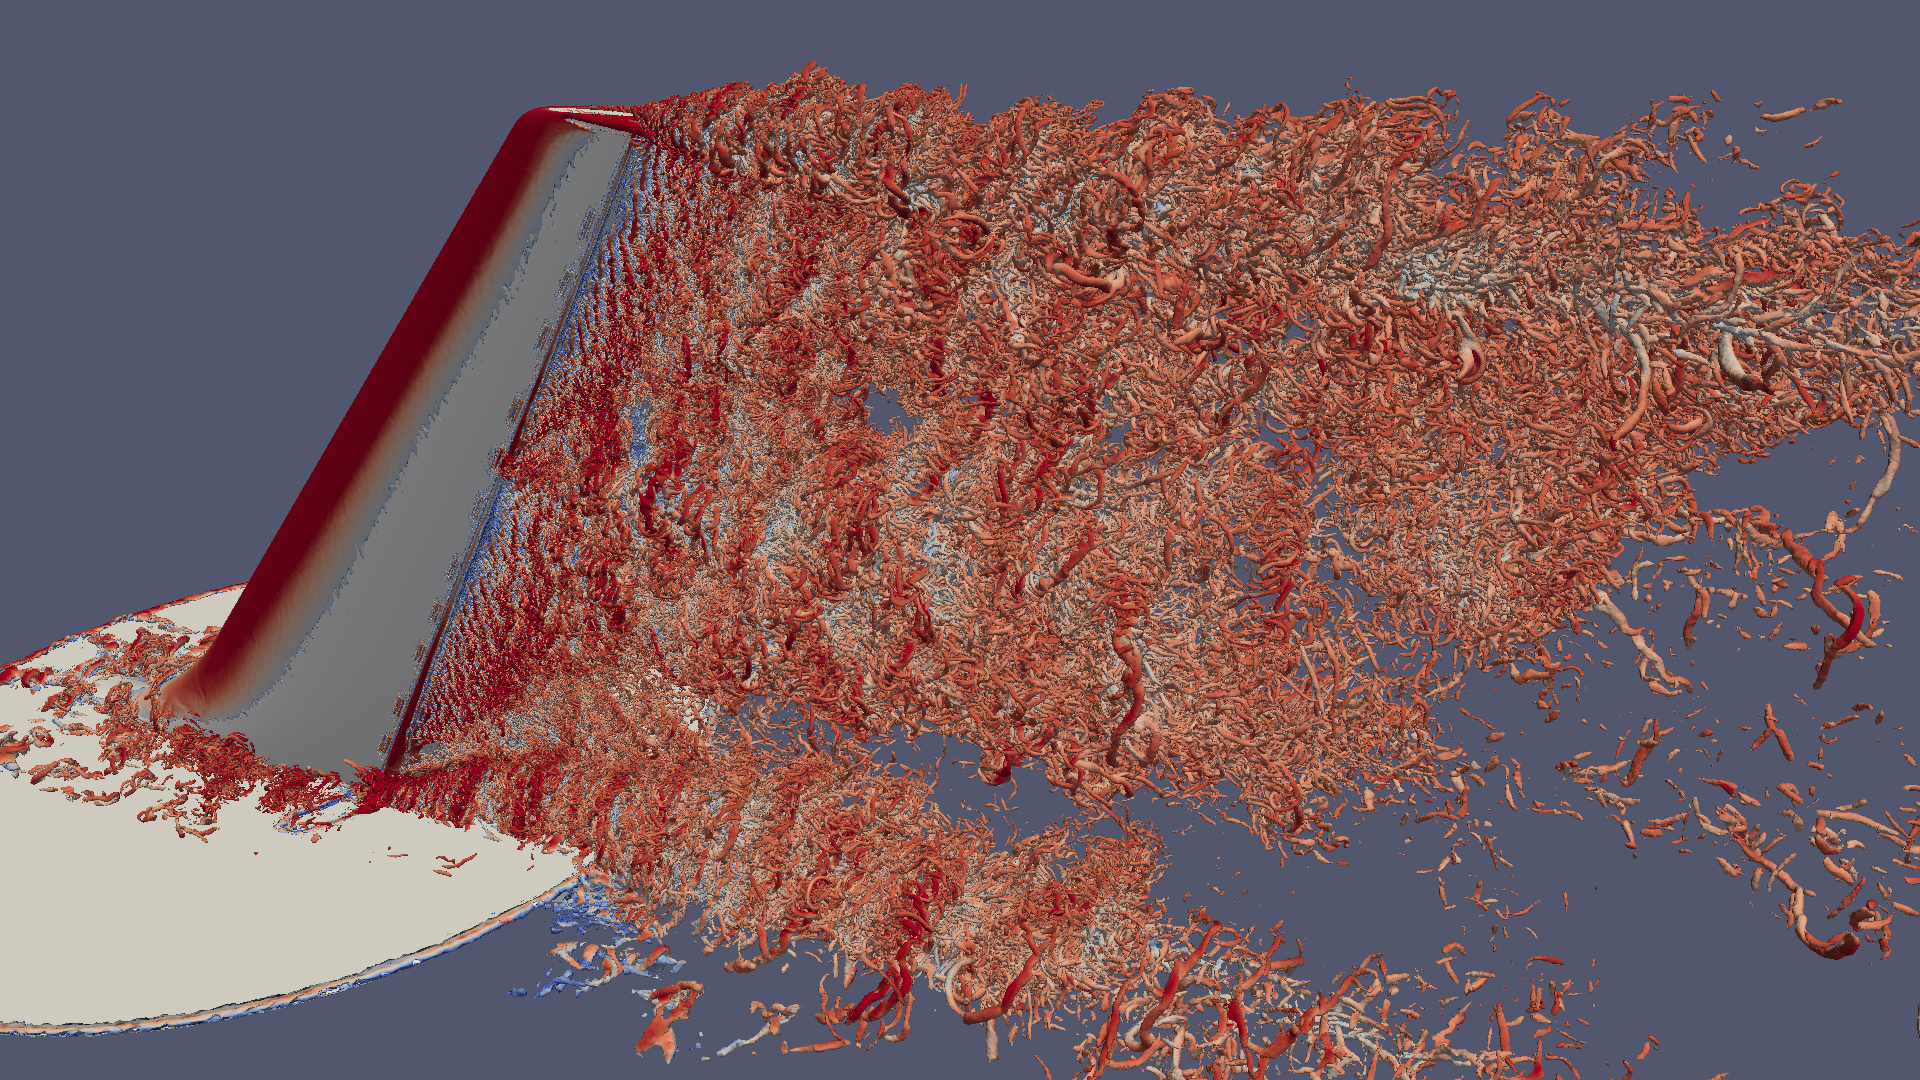 Visualization of instantaneous isosurface of vorticity (Q)from a detached eddy simulation of a vertical tail/rudder assembly with flow controlfrom a single, active synthetic jet.